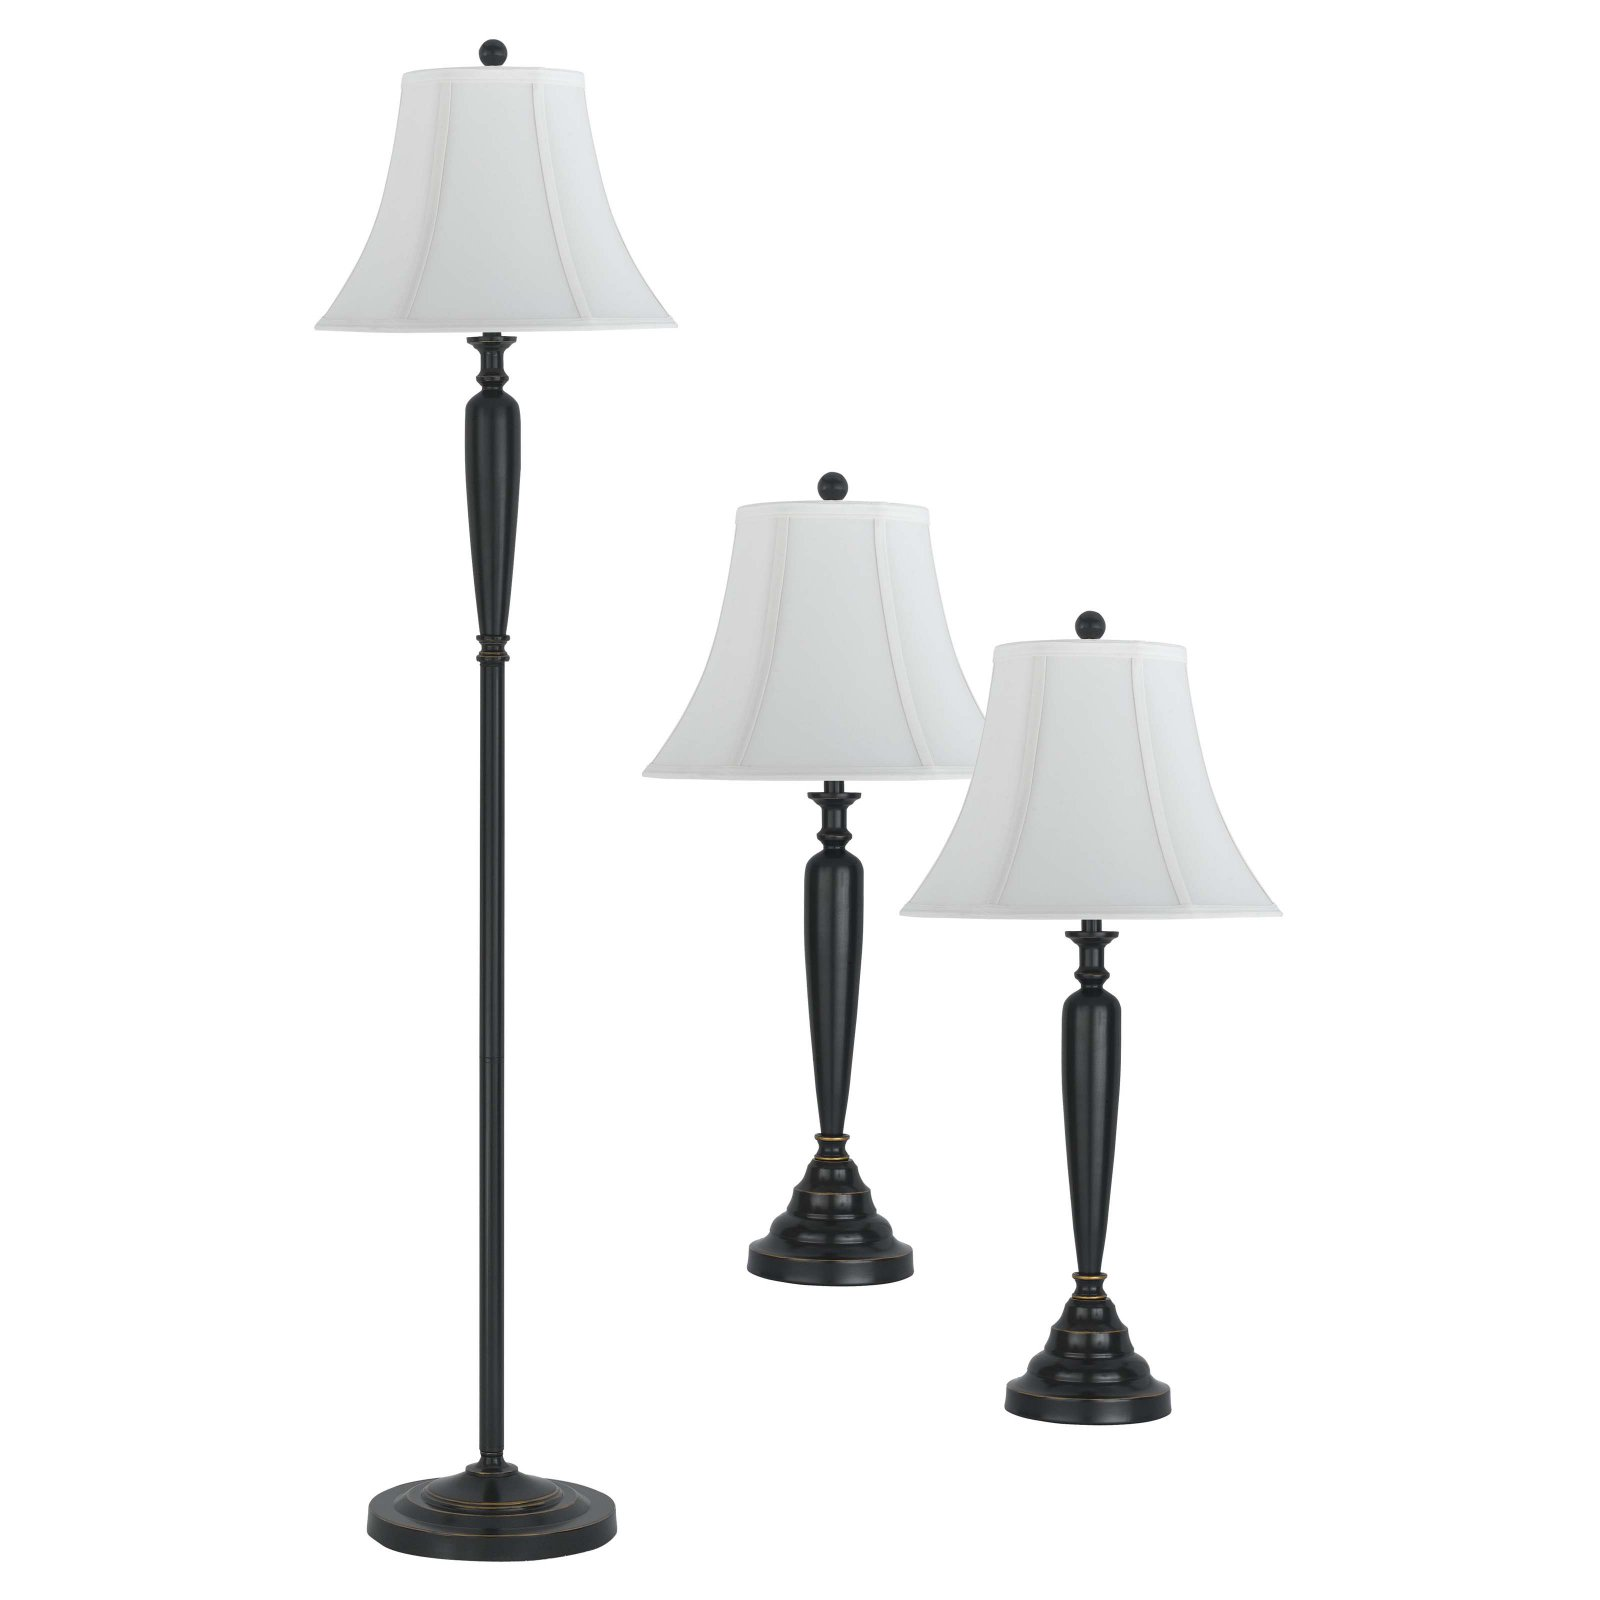 Cal Lighting BO-2049 3 3 Piece Package 2 Table Lamps   1 Floor Lamp by CAL Lighting